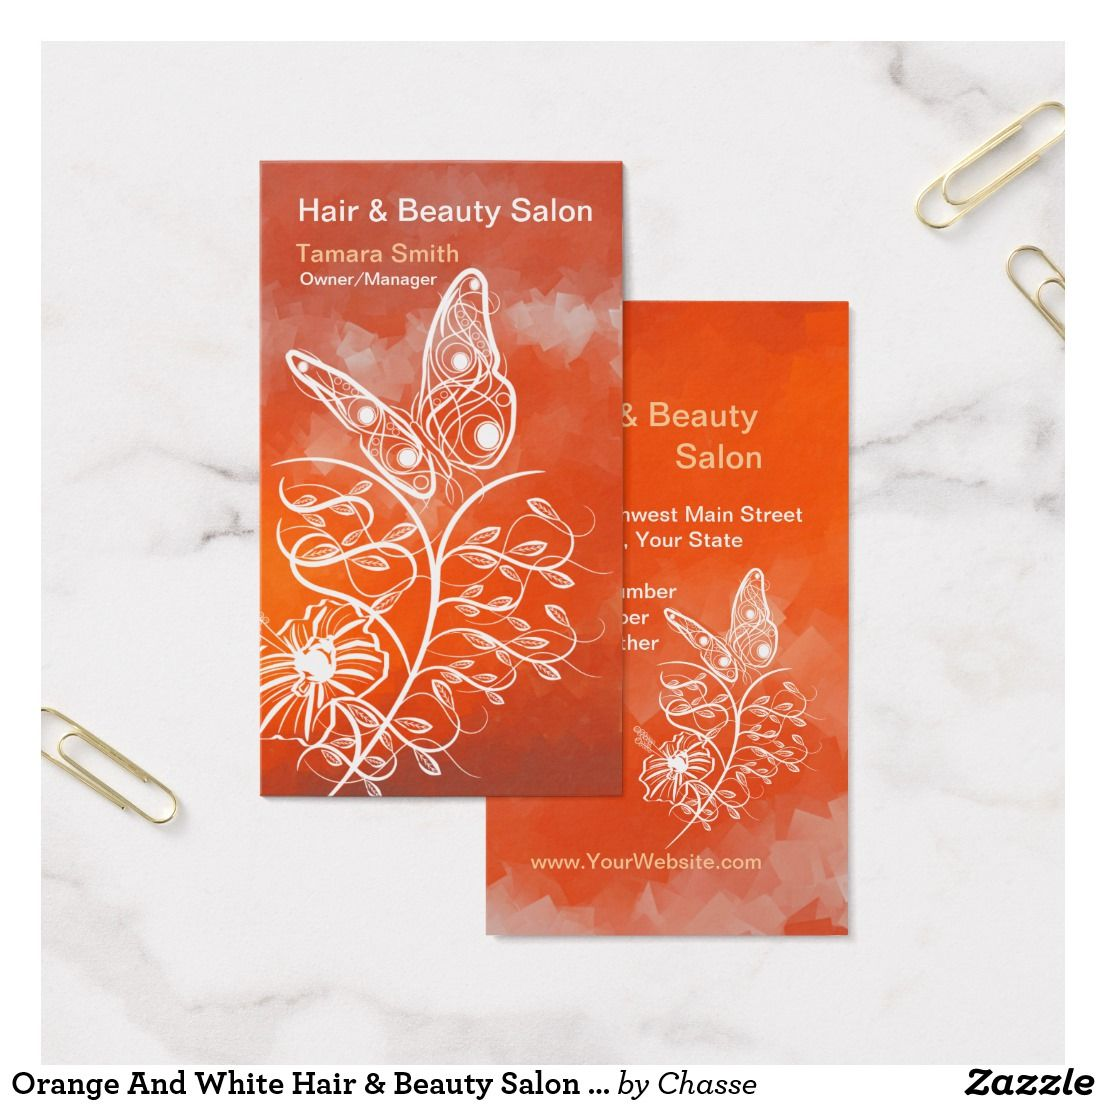 Orange And White Hair & Beauty Salon Business Card | Guest Pinner ...